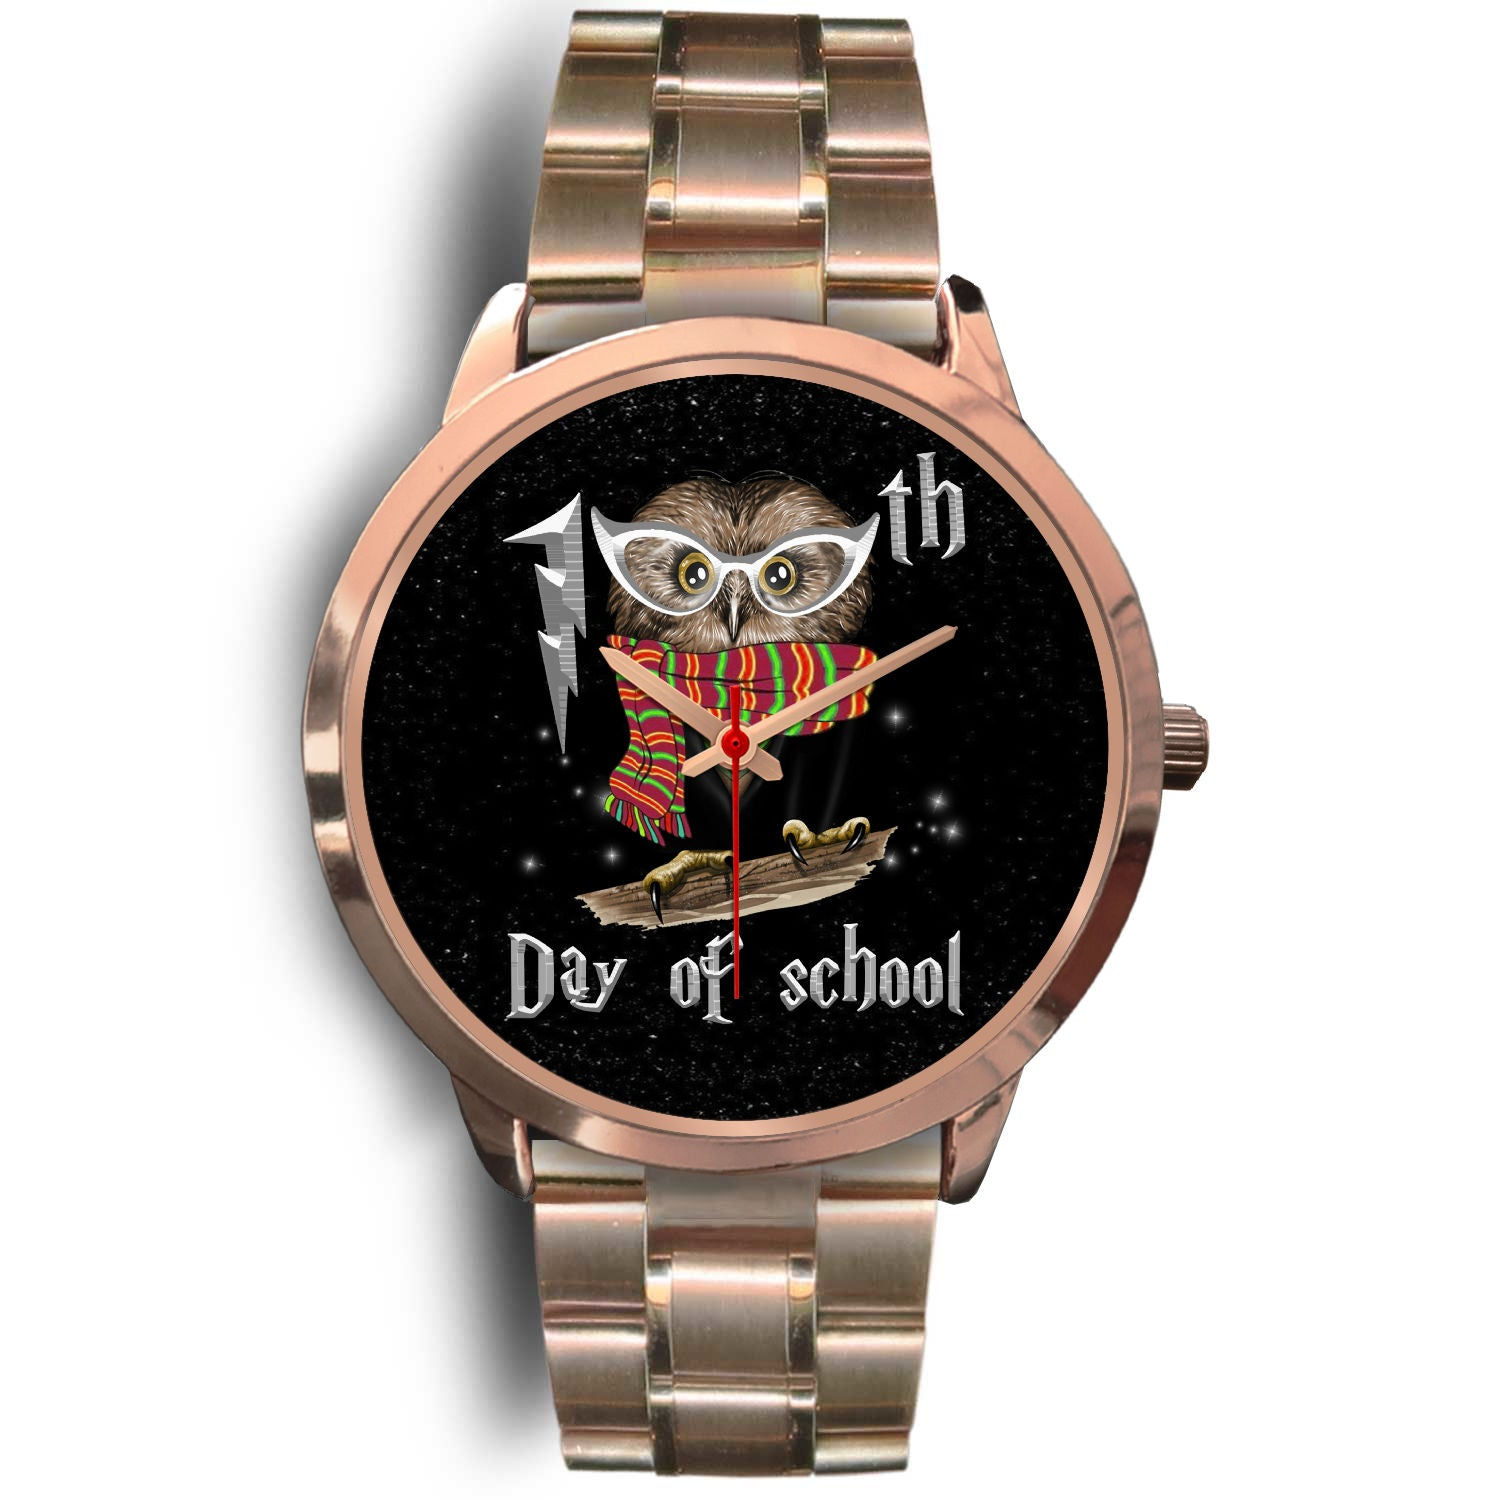 VIRA Owl Rose Gold Stainless Steel Watch For Awesome Teachers